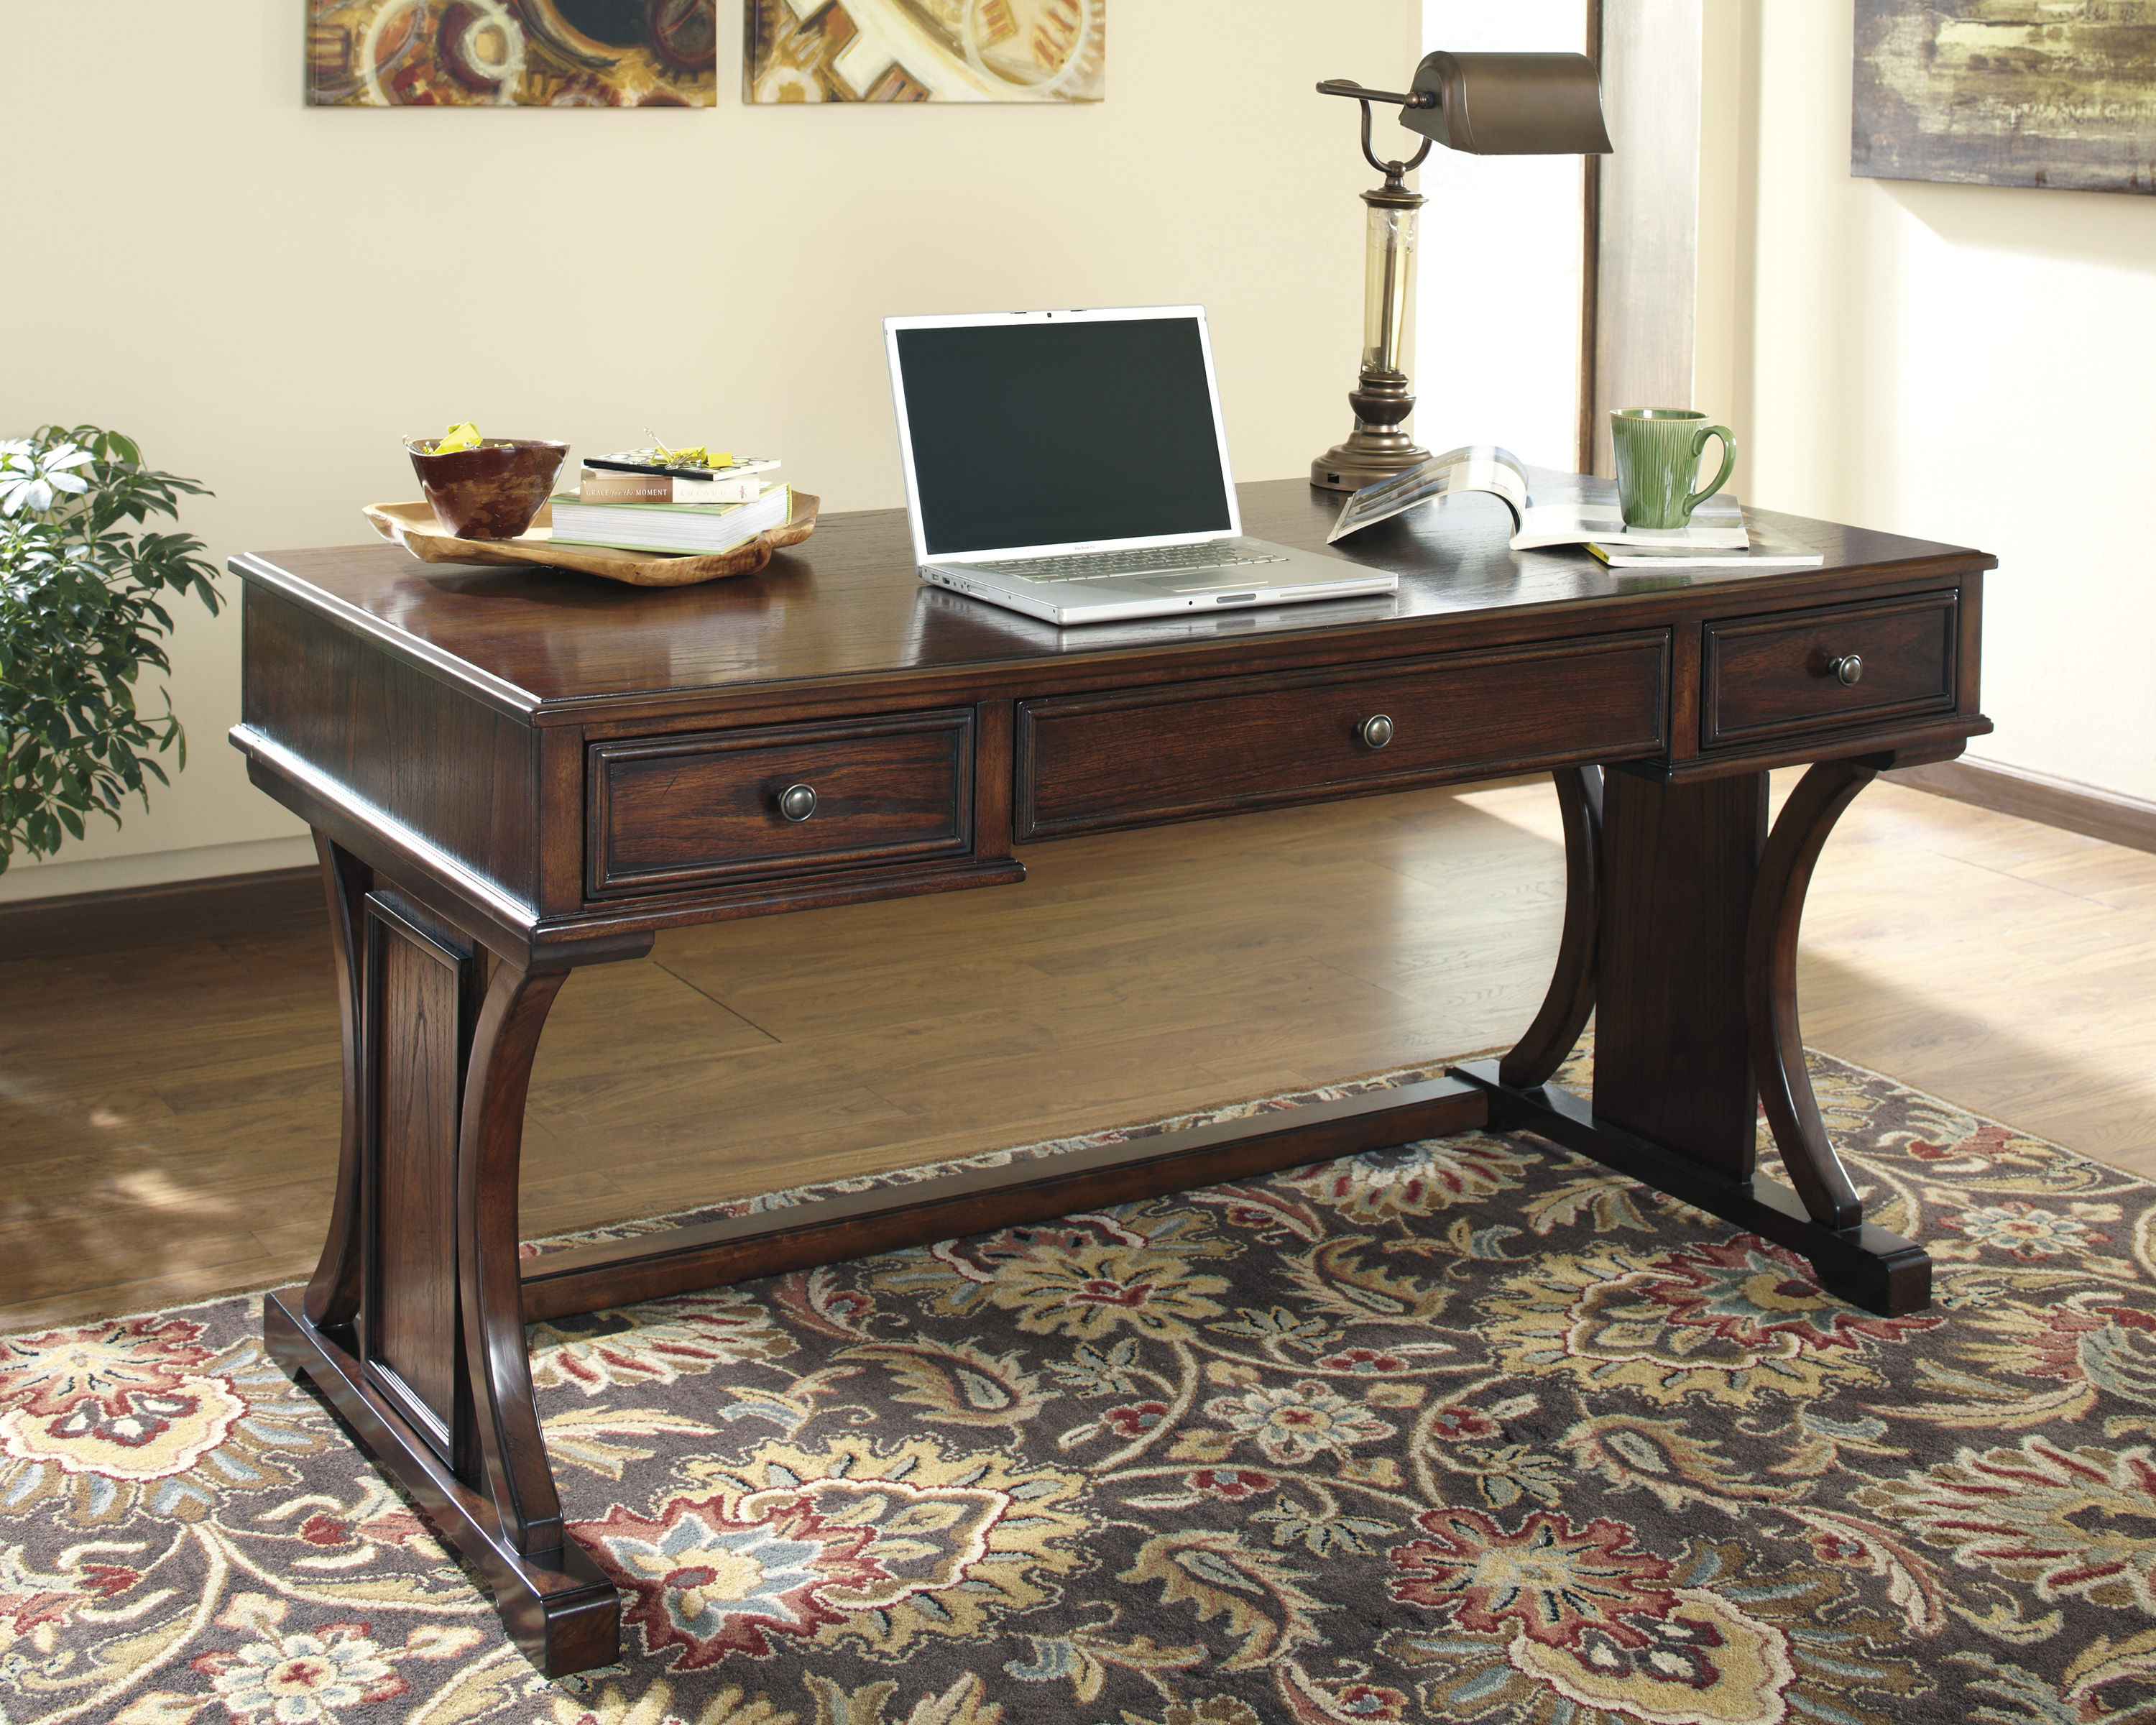 Home Office Sets Office Furniture Elements: Ashley Furniture Devrik Home Office Desk